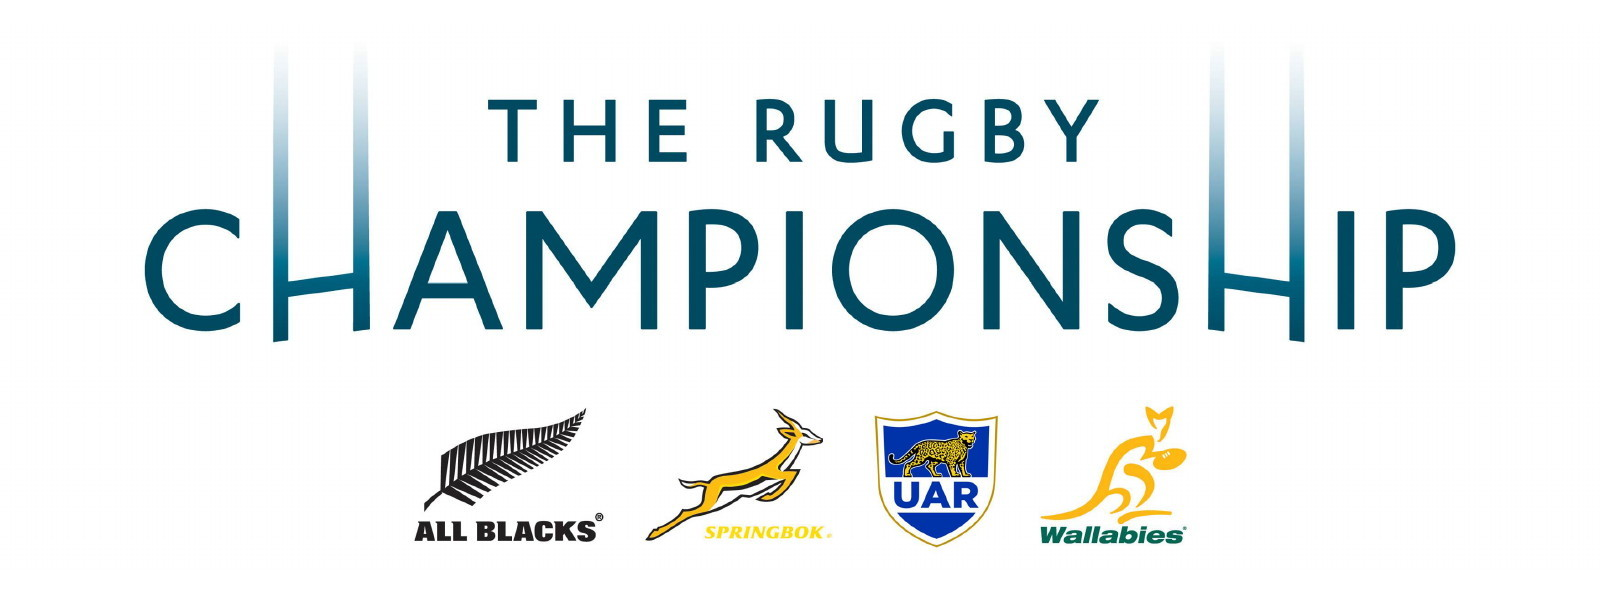 https://www.brassmonkeytaipei.com/site-content/8-home/1209-the-rugby-championship-2015